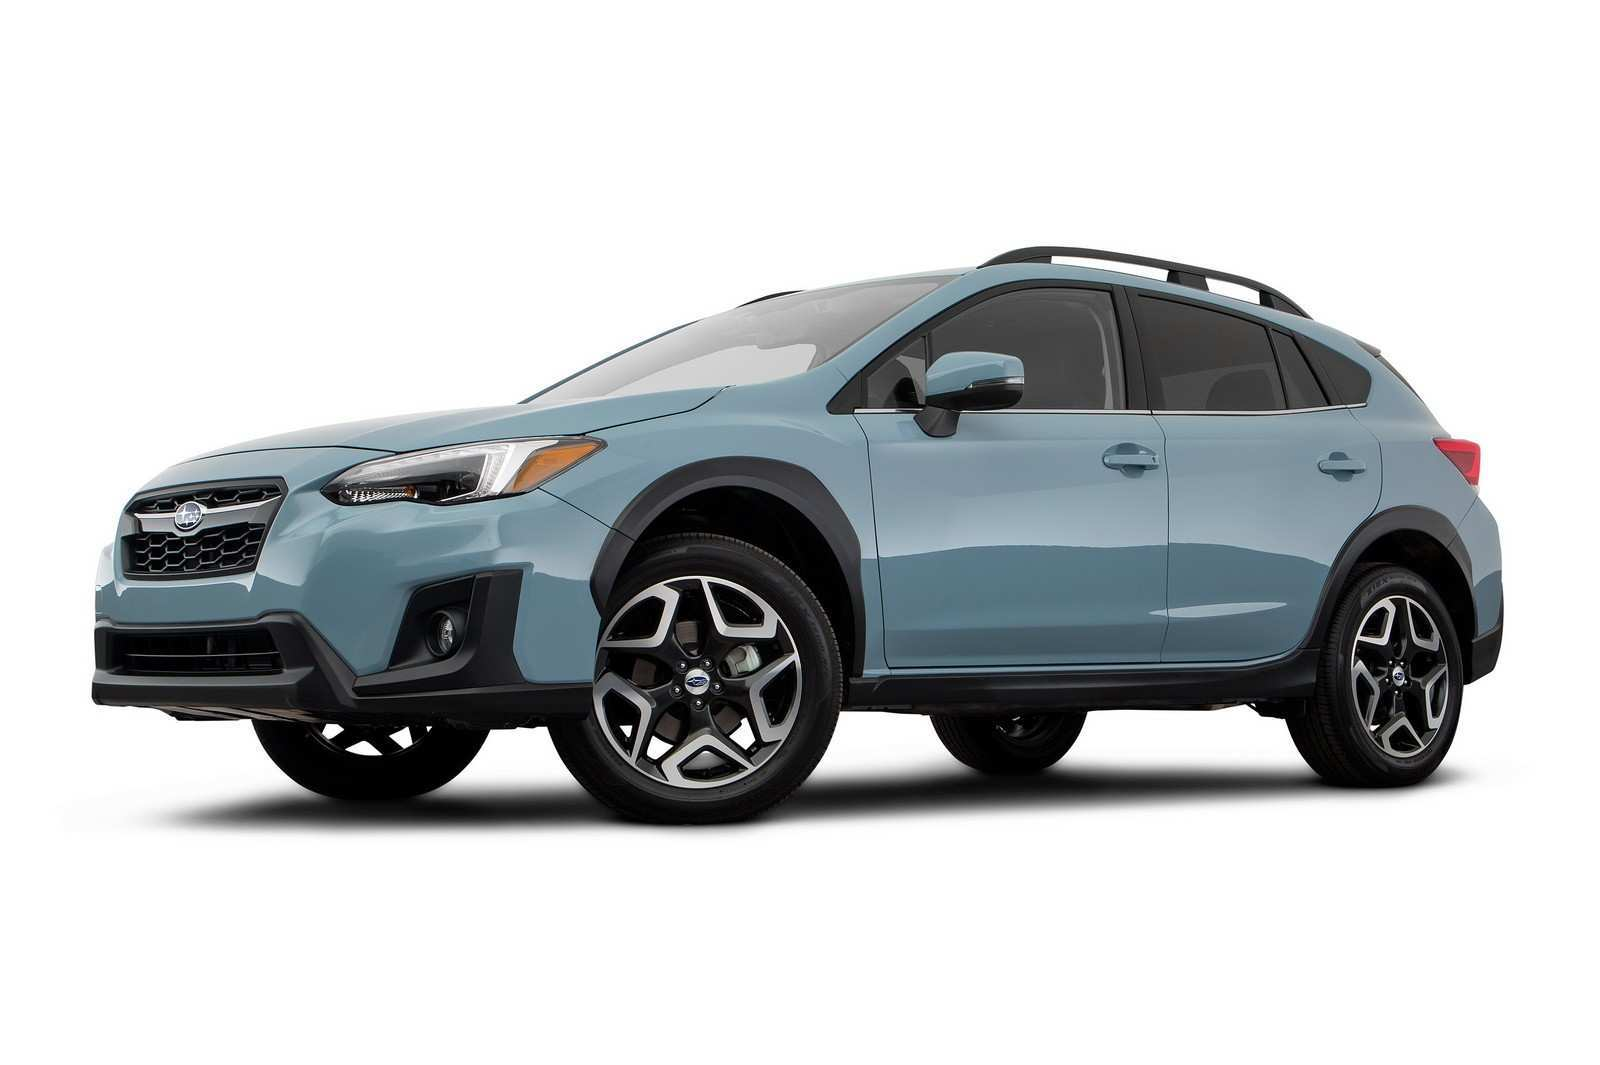 15 Gallery of 2019 Subaru Evoltis Engine for 2019 Subaru Evoltis